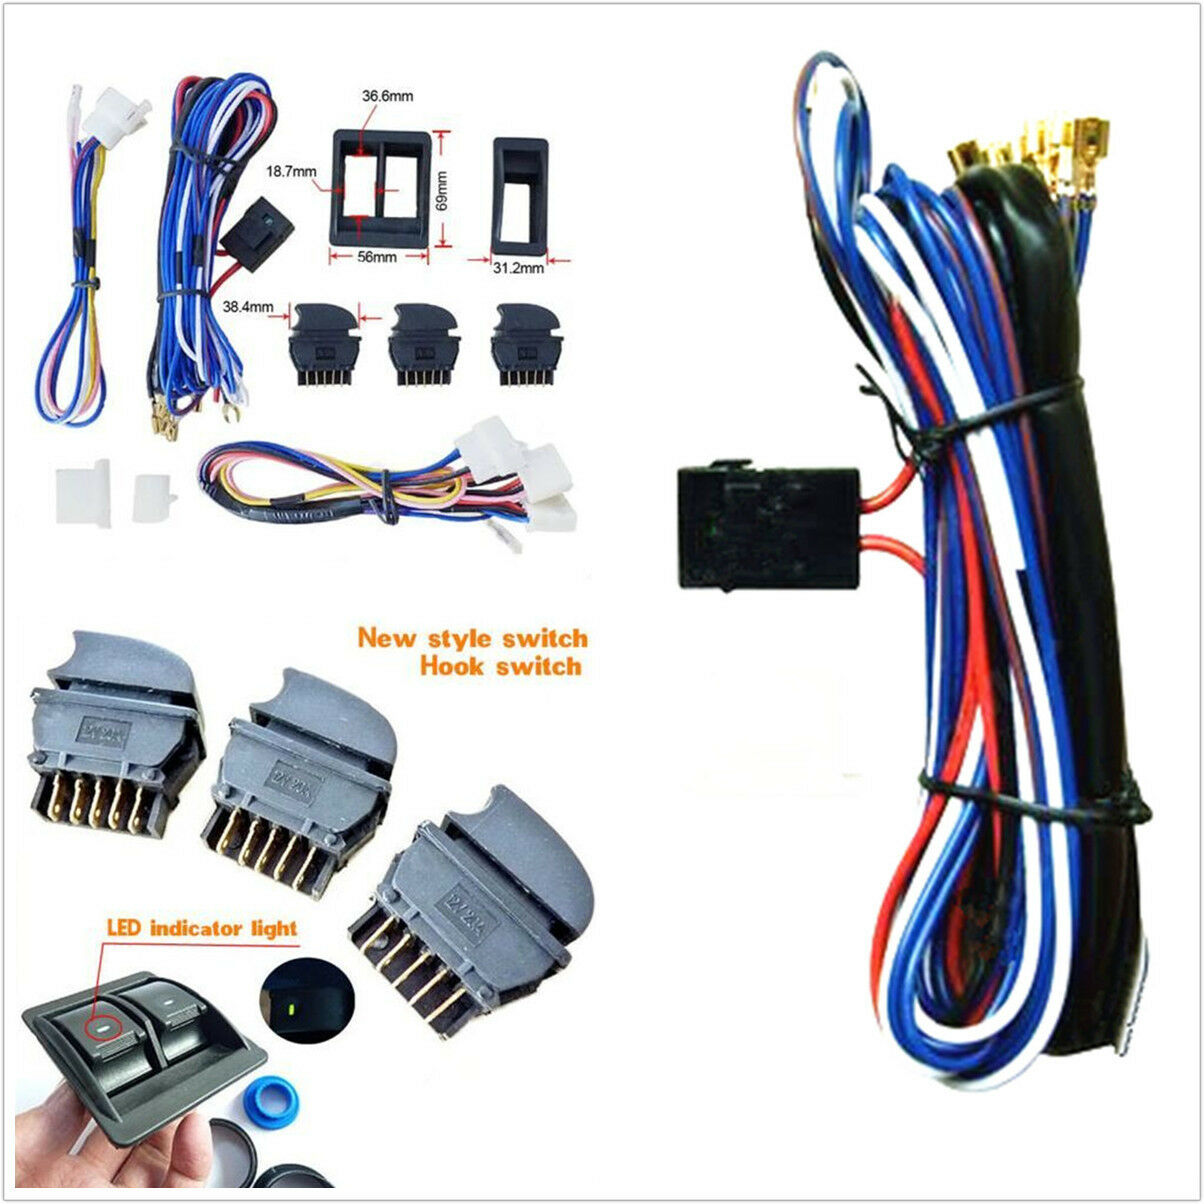 Diy Wire Harness Kits Center Motorcycle Wiring New Dc 12v Car Power Electric Window Switch With Rh Picclick Com